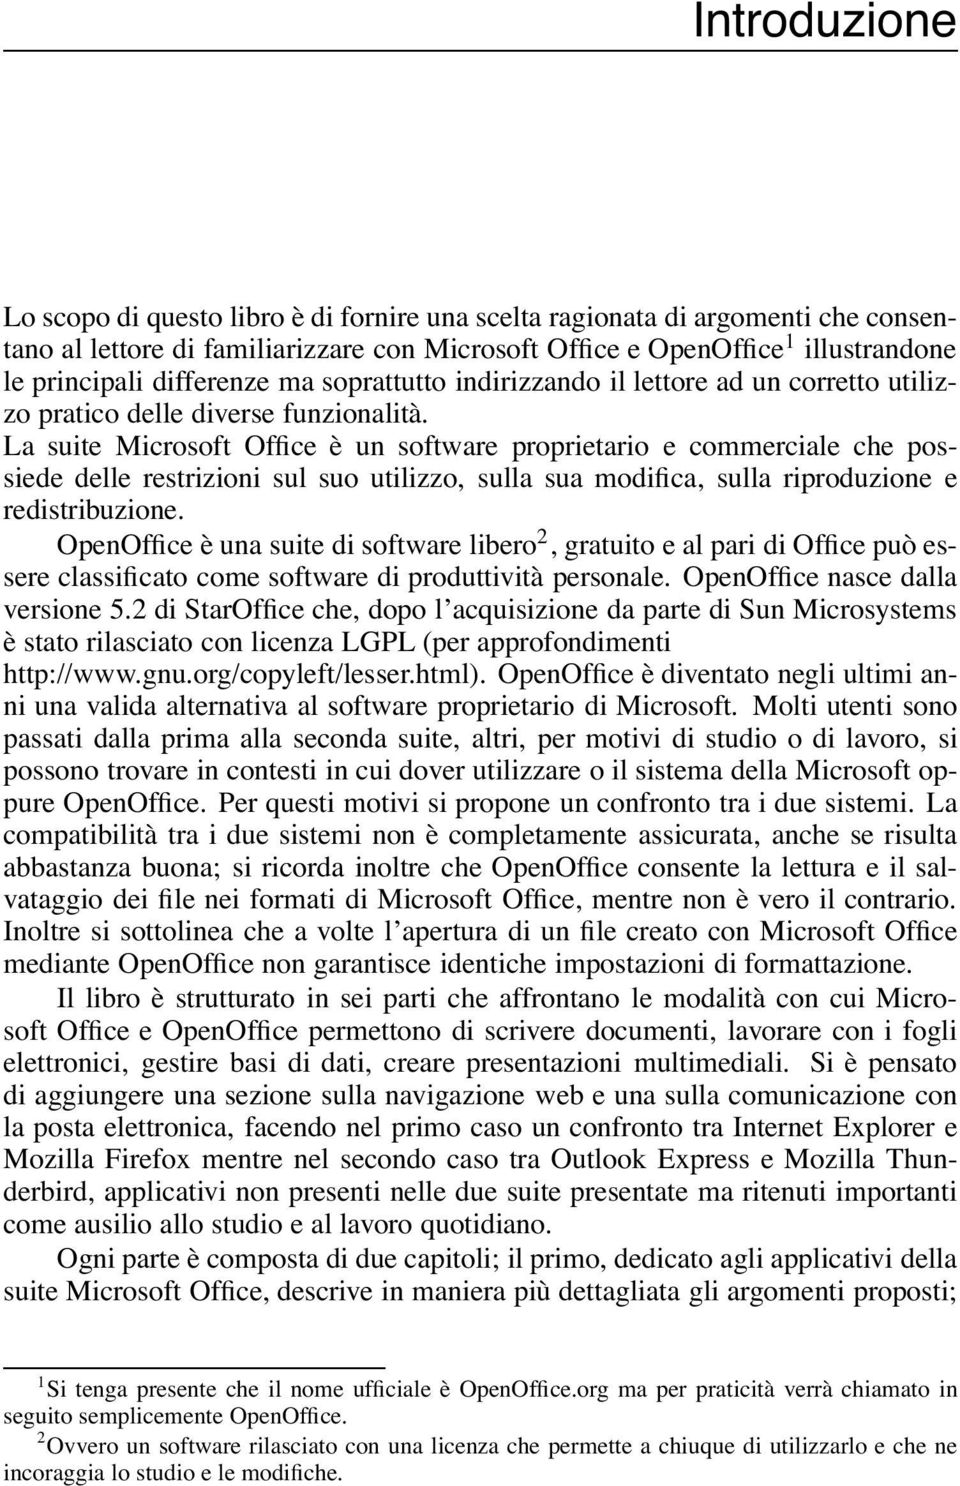 La suite Microsoft Office è un software proprietario e commerciale che possiede delle restrizioni sul suo utilizzo, sulla sua modifica, sulla riproduzione e redistribuzione.